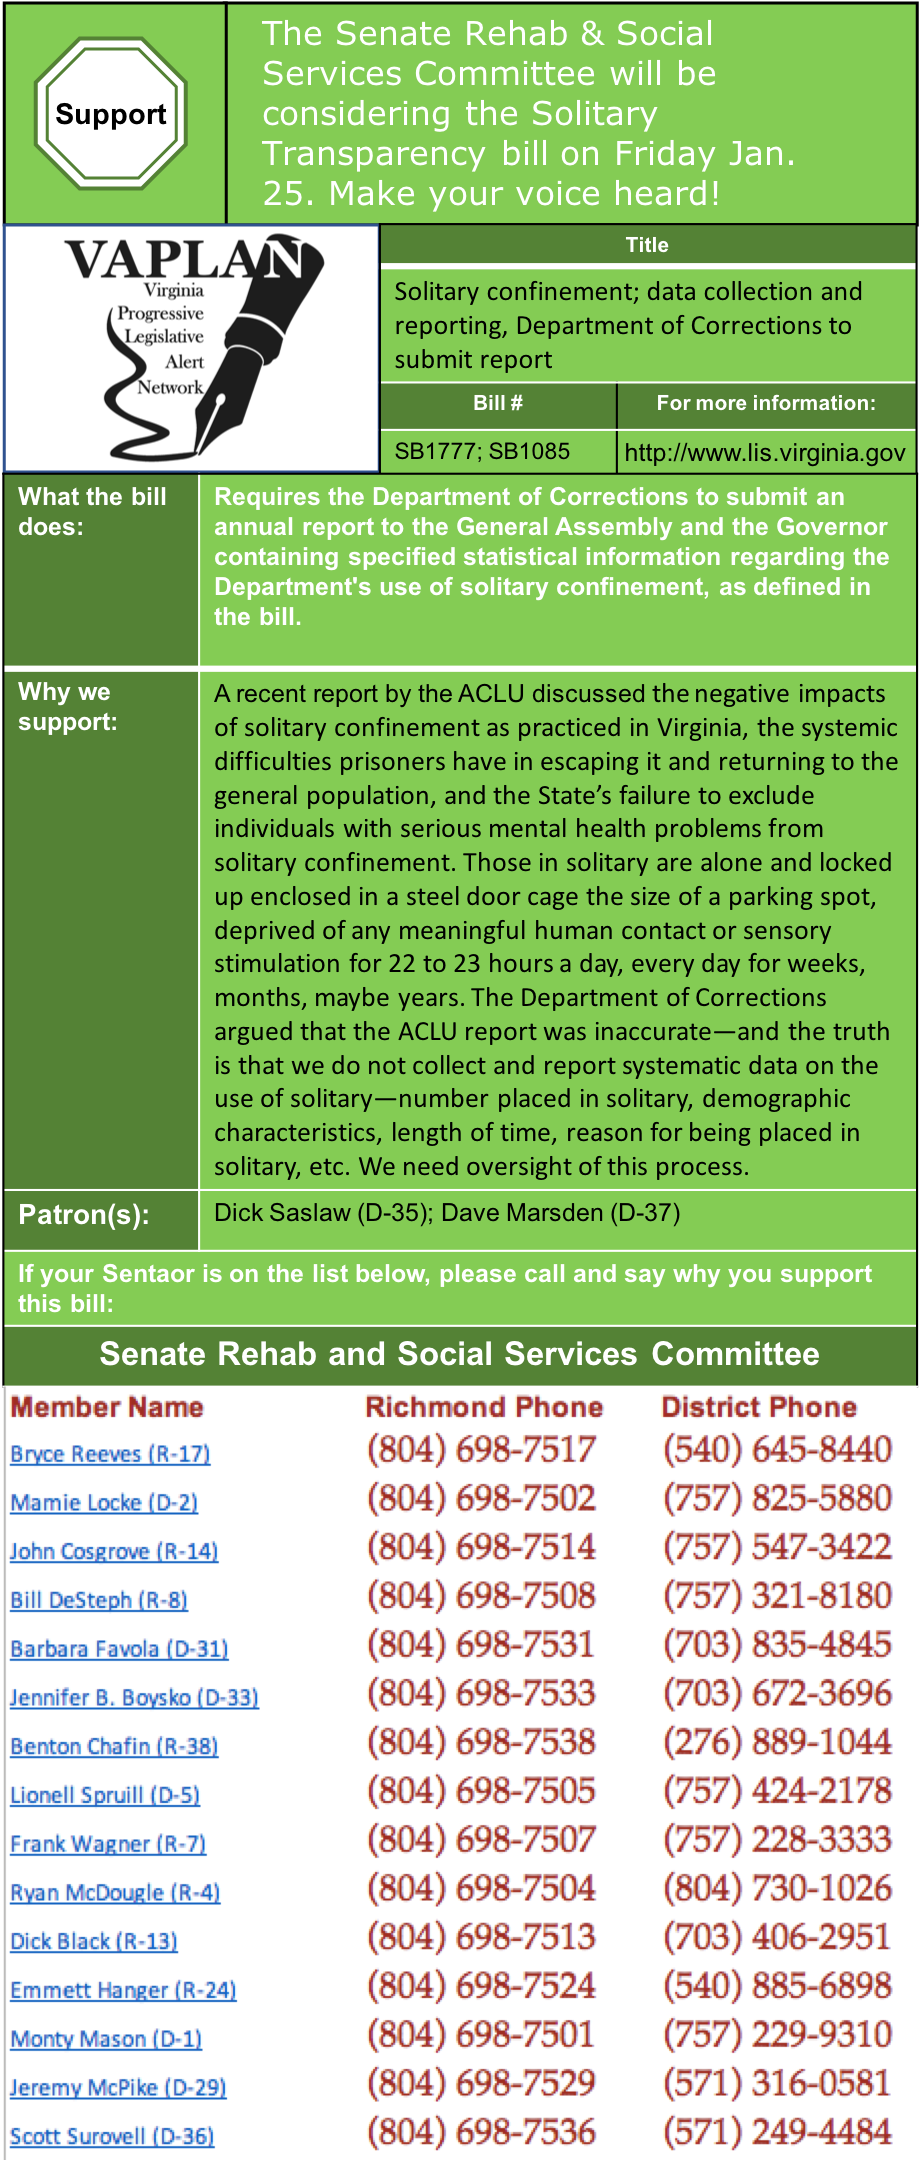 ALERT: Senate Rehab and Social Services to hear Solitary Transparency Bill Friday Jan. 25